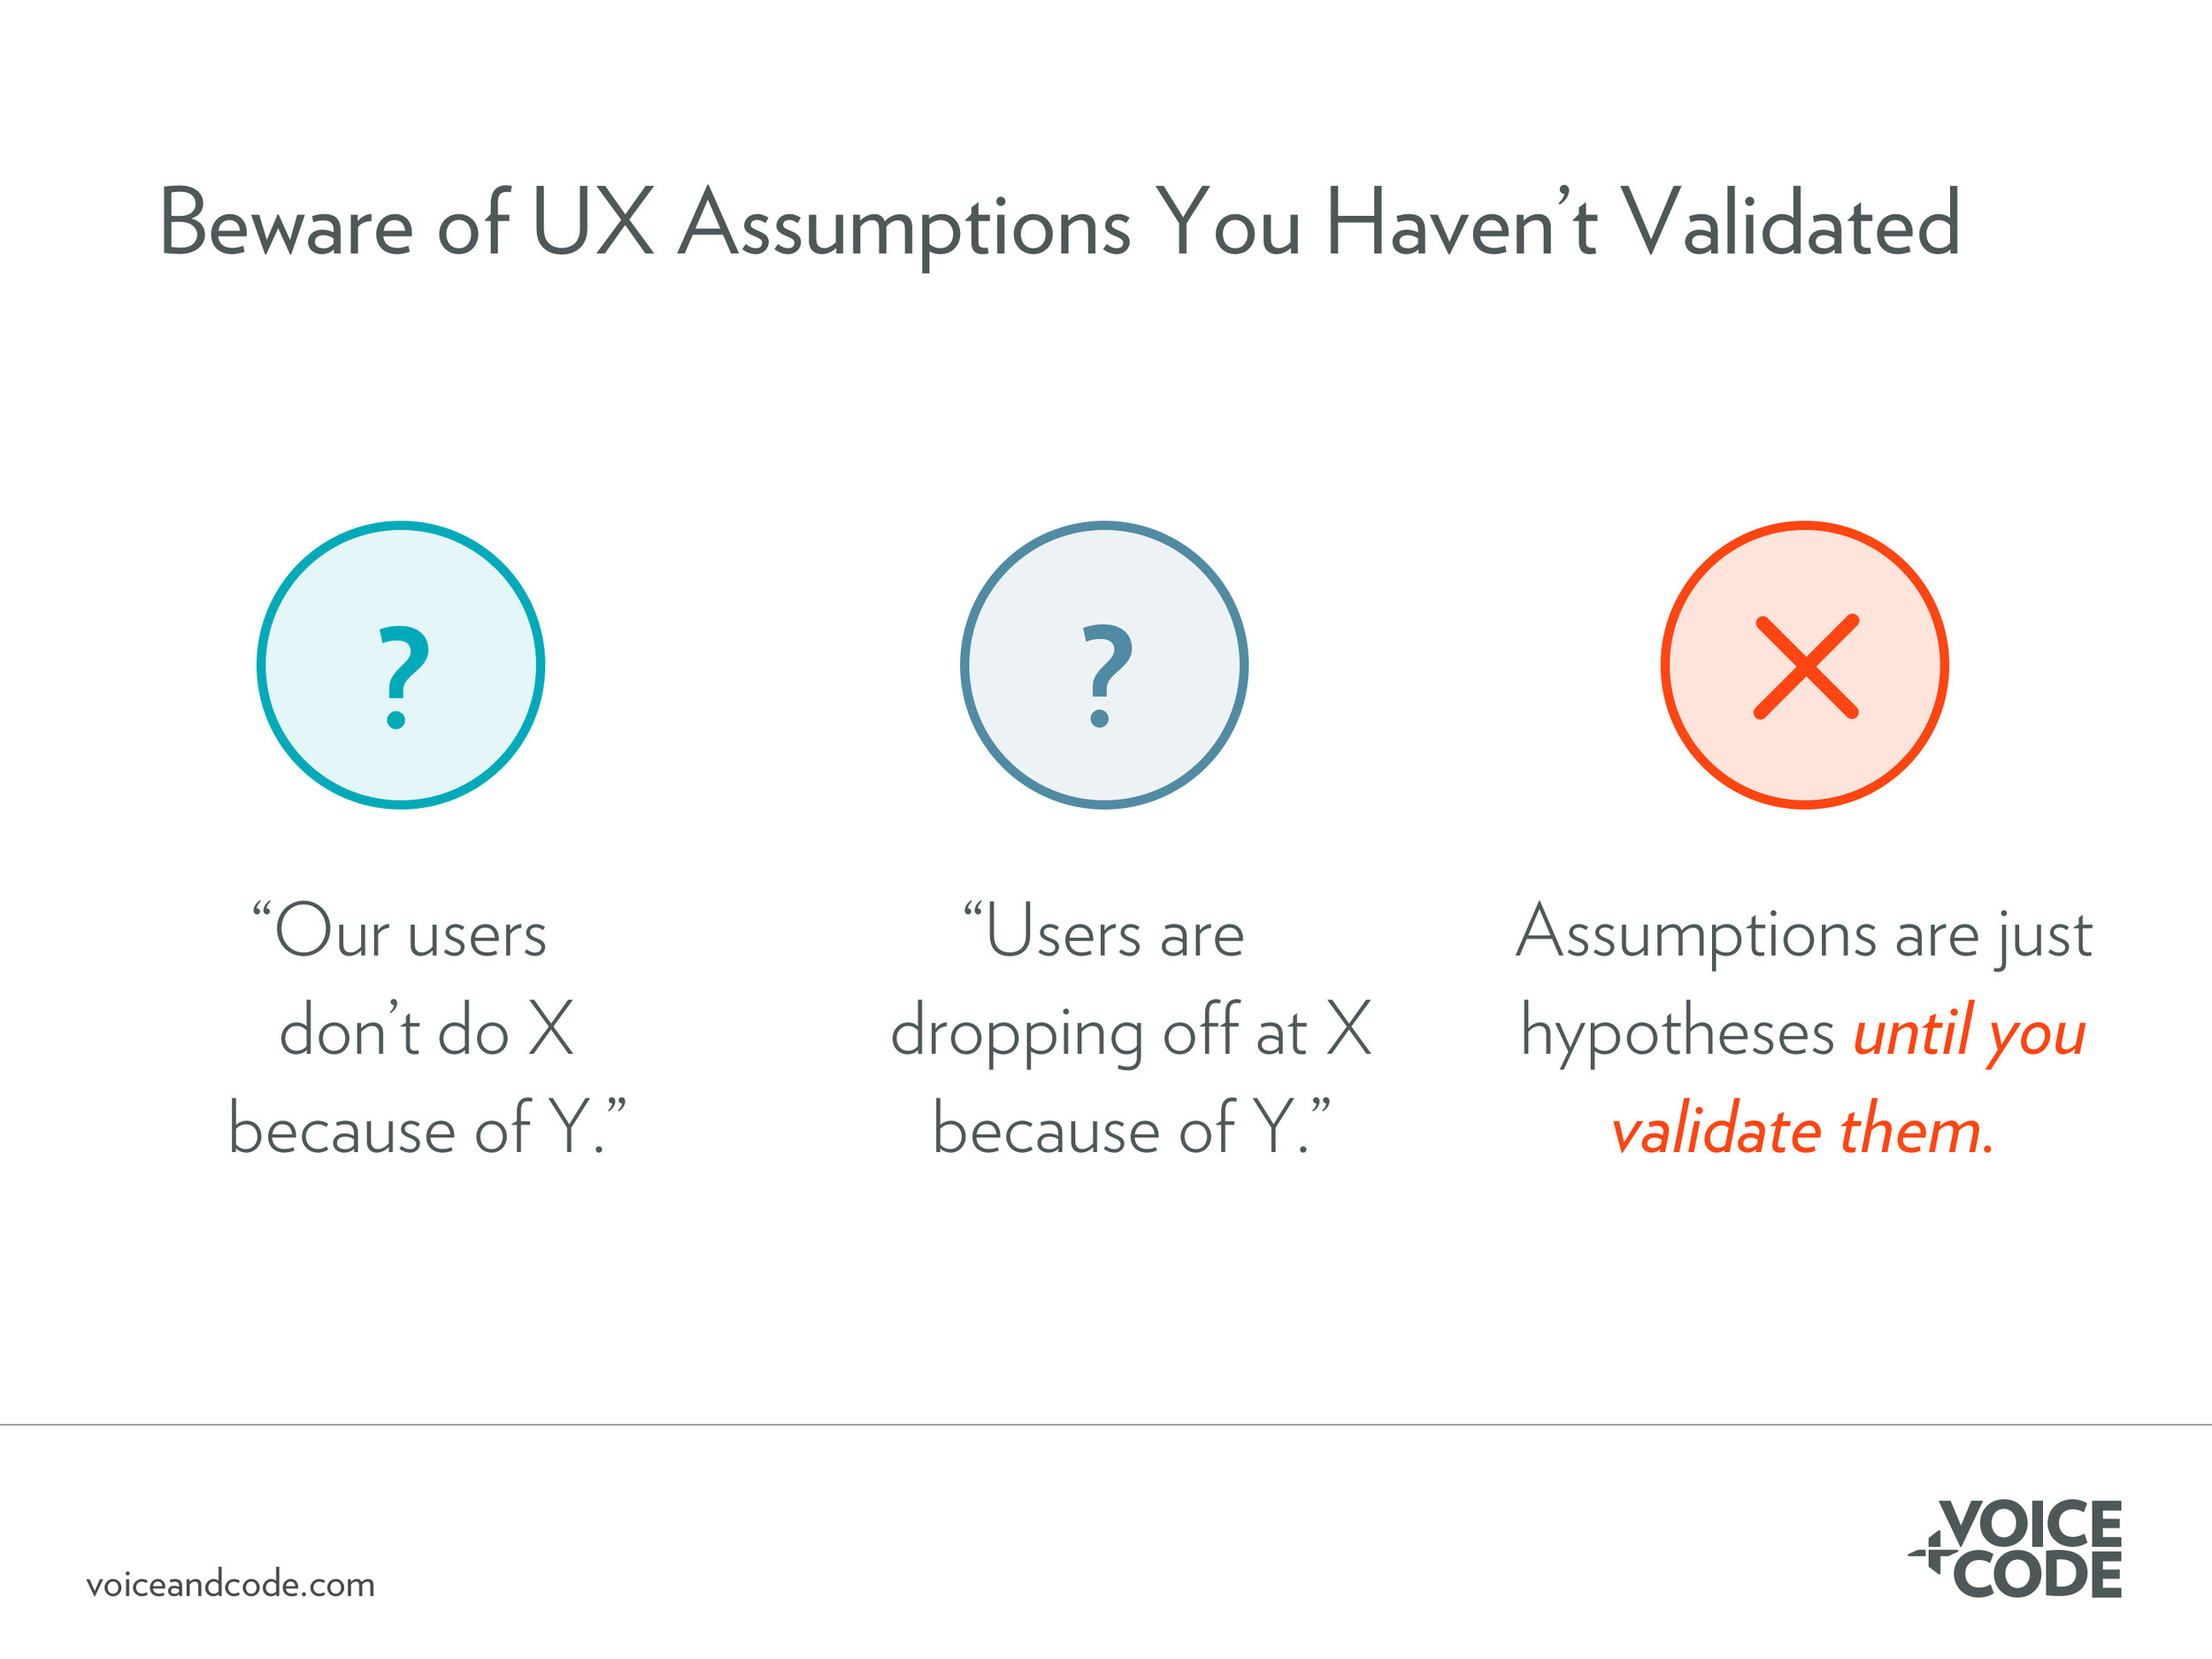 Beware of UX assumptions you haven't validated